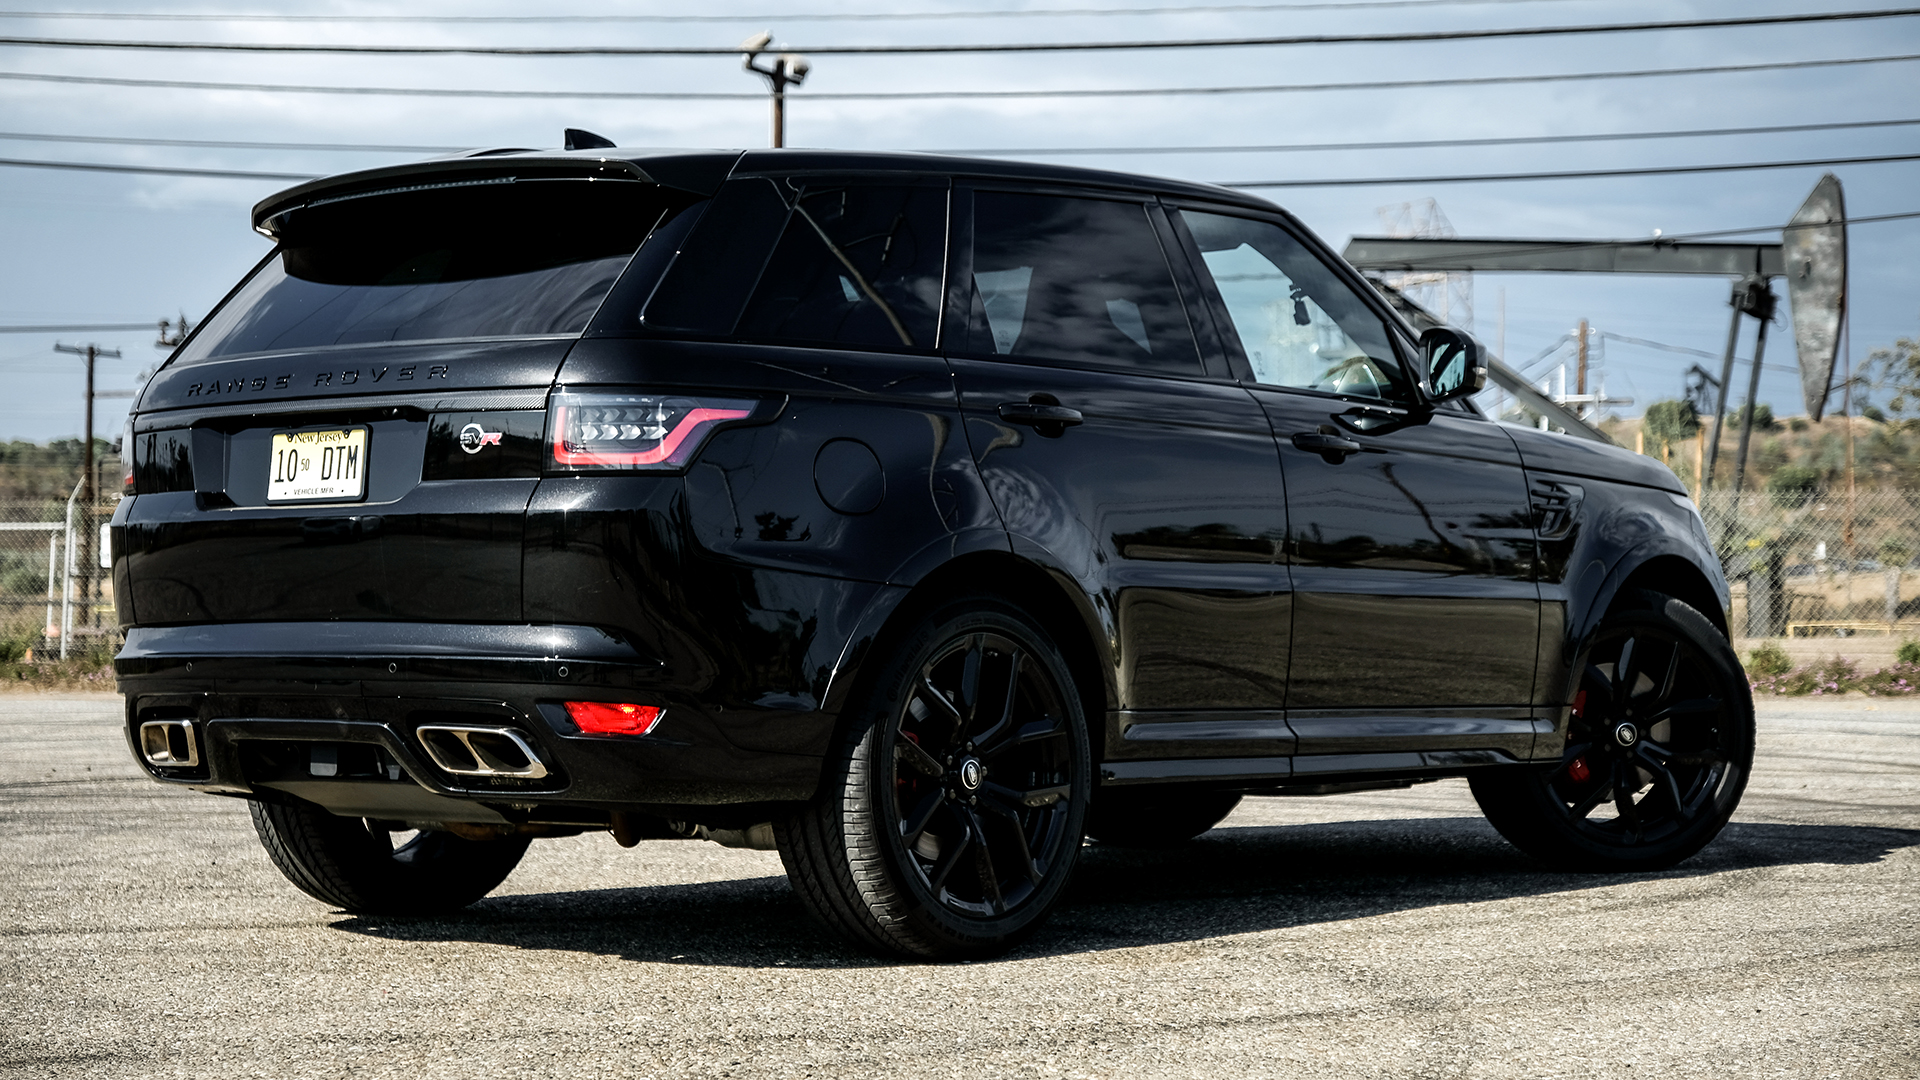 Ongebruikt 2018 Range Rover Sport SVR Review: This 575-HP Solid Wall of Sound XU-14